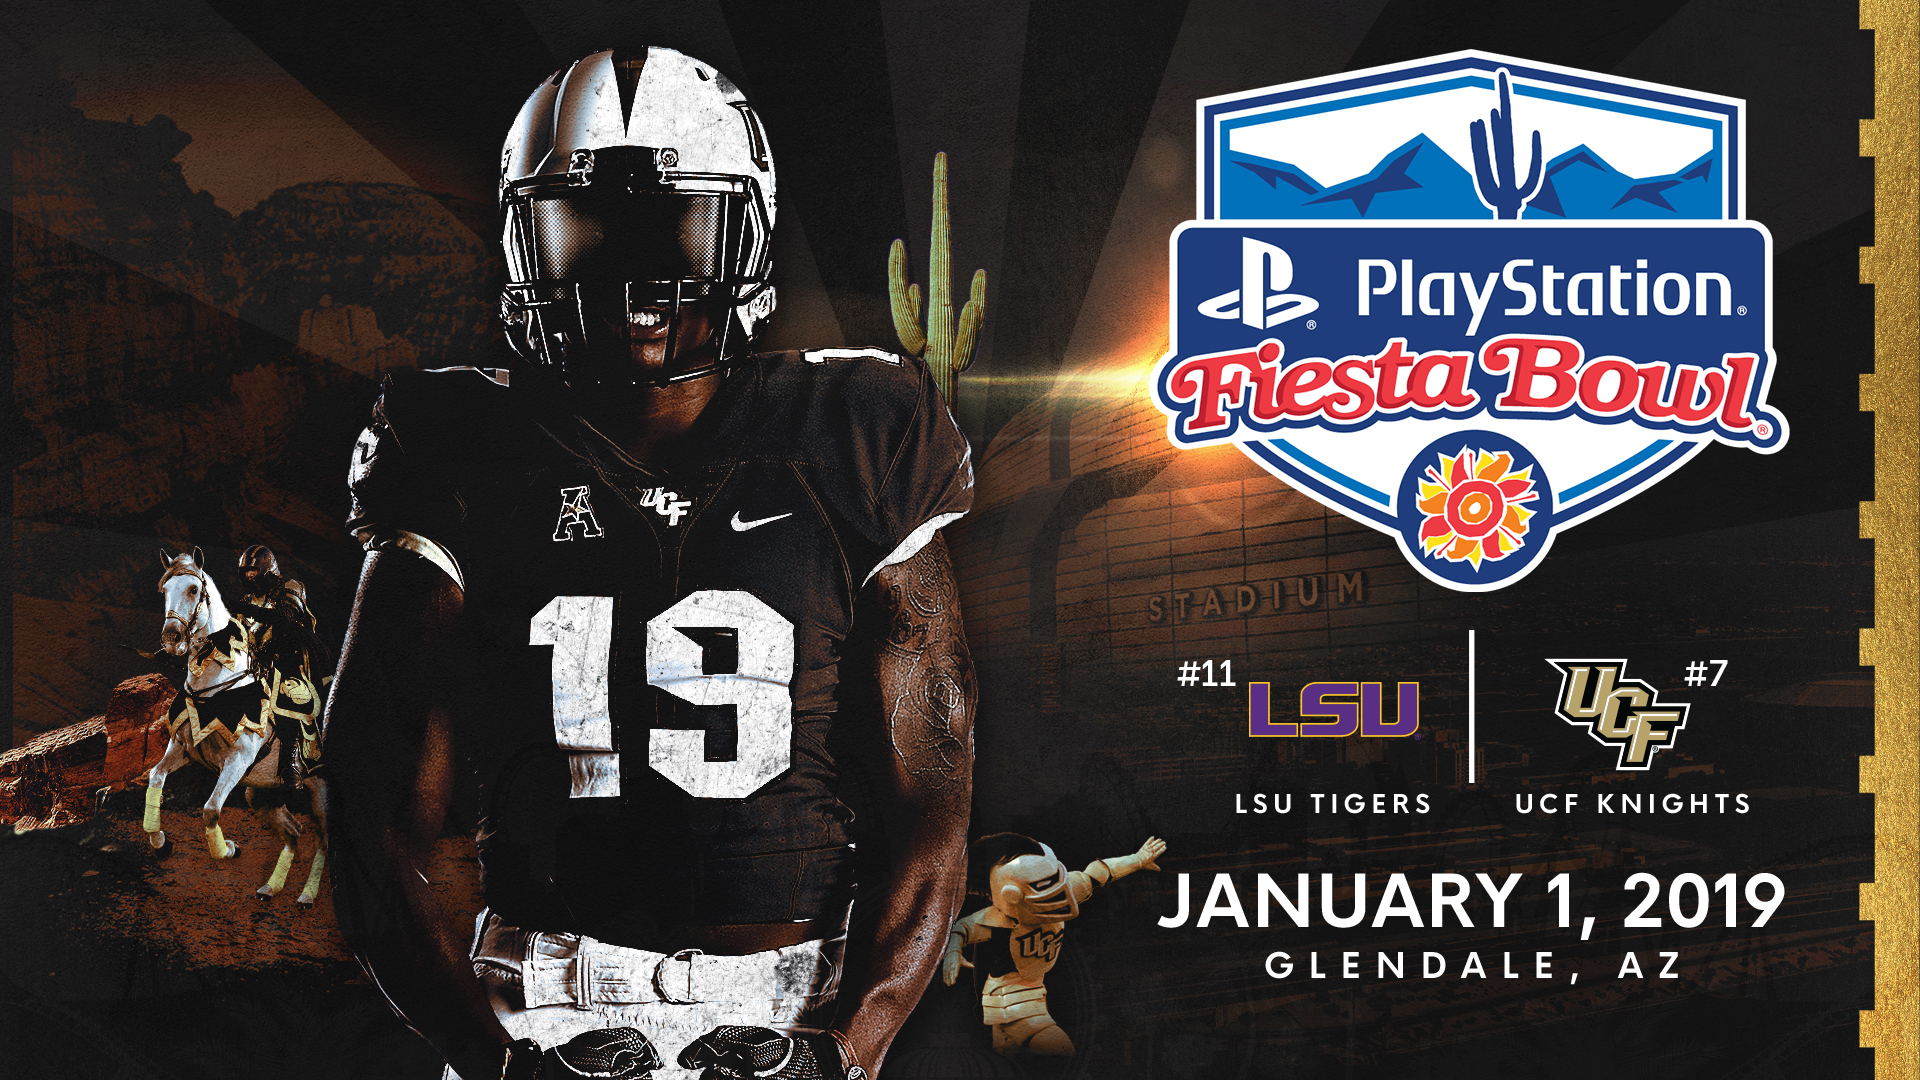 Fiesta Bowl email posters